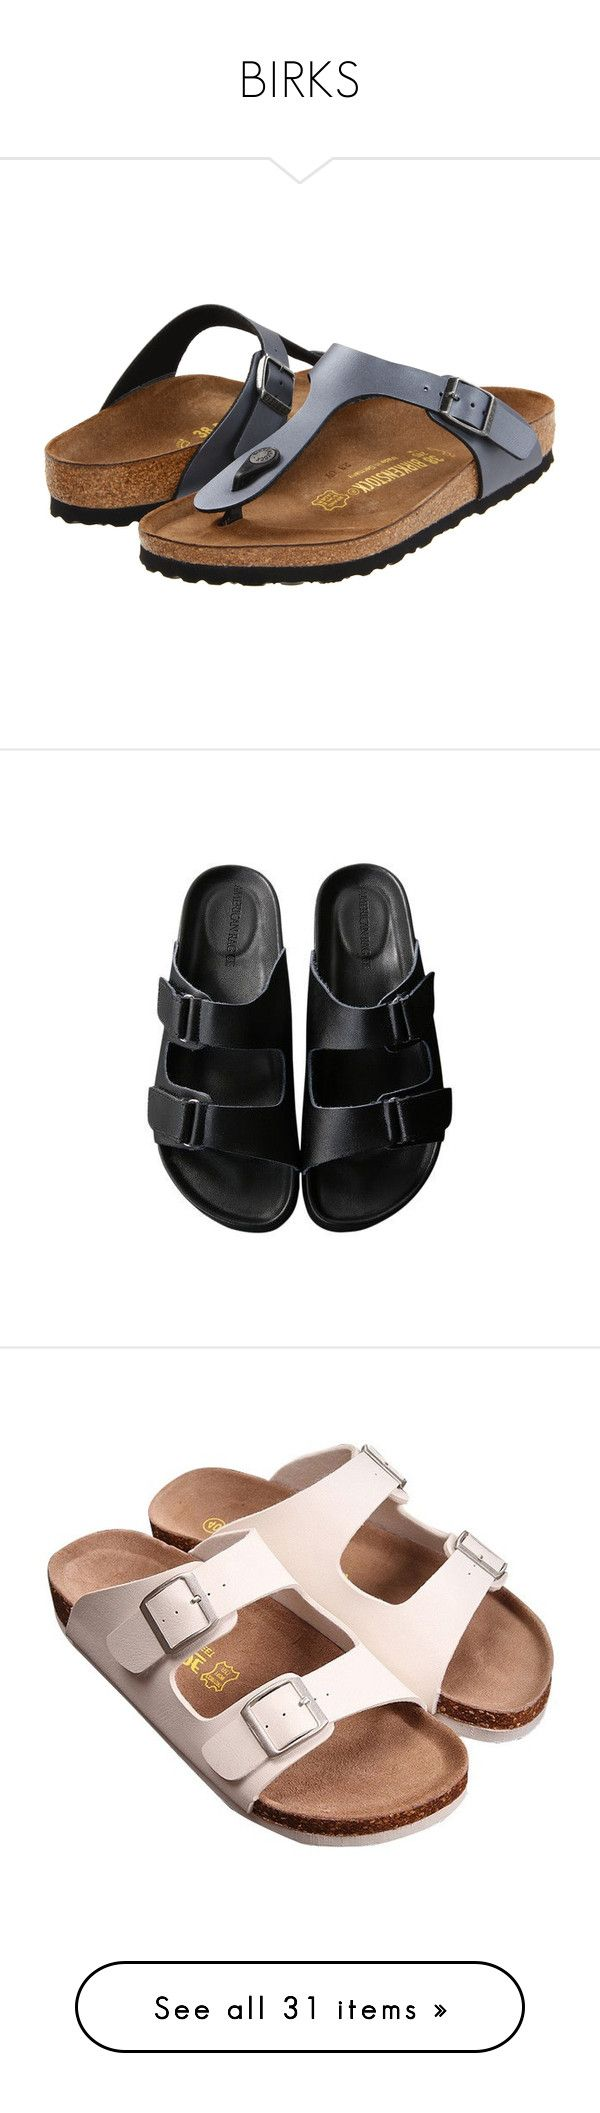 """BIRKS"" by chanelflowurs ❤ liked on Polyvore featuring shoes, sandals, special occasion sandals, cushioned shoes, evening sandals, birkenstock, shock absorbing shoes, black, clothes - shoes and american rag cie shoes"